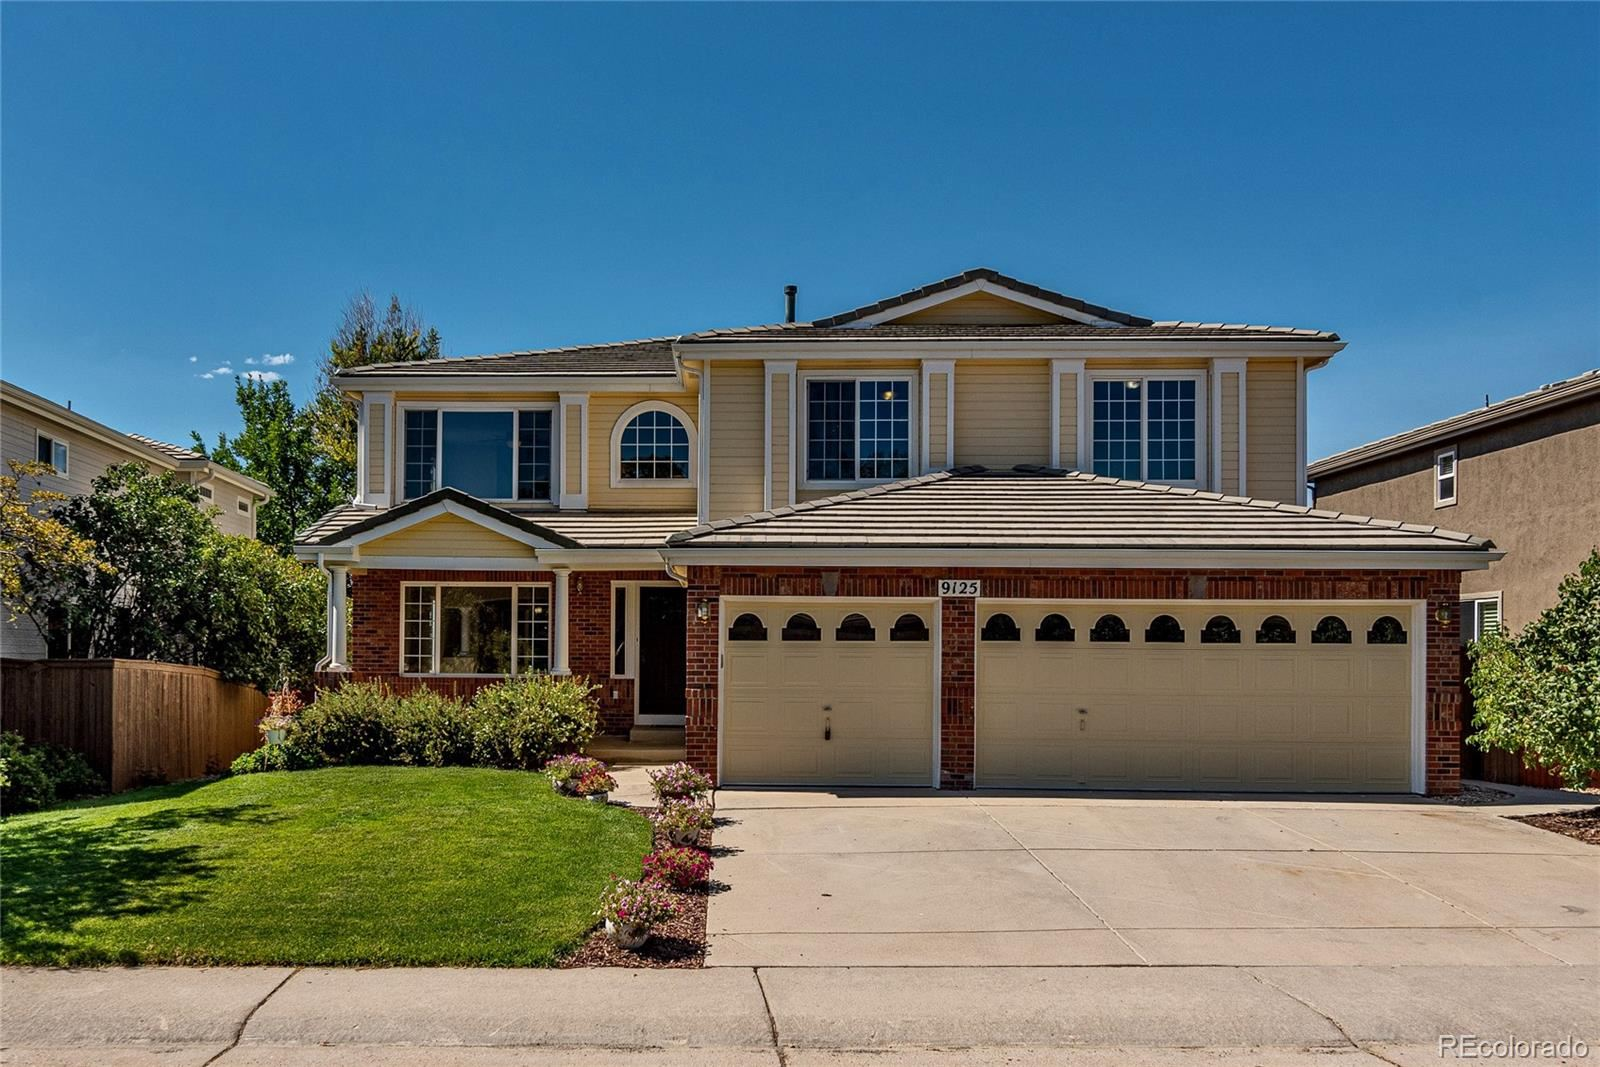 9125 Ironwood Way, Highlands Ranch, CO 80129 - #: 6016597